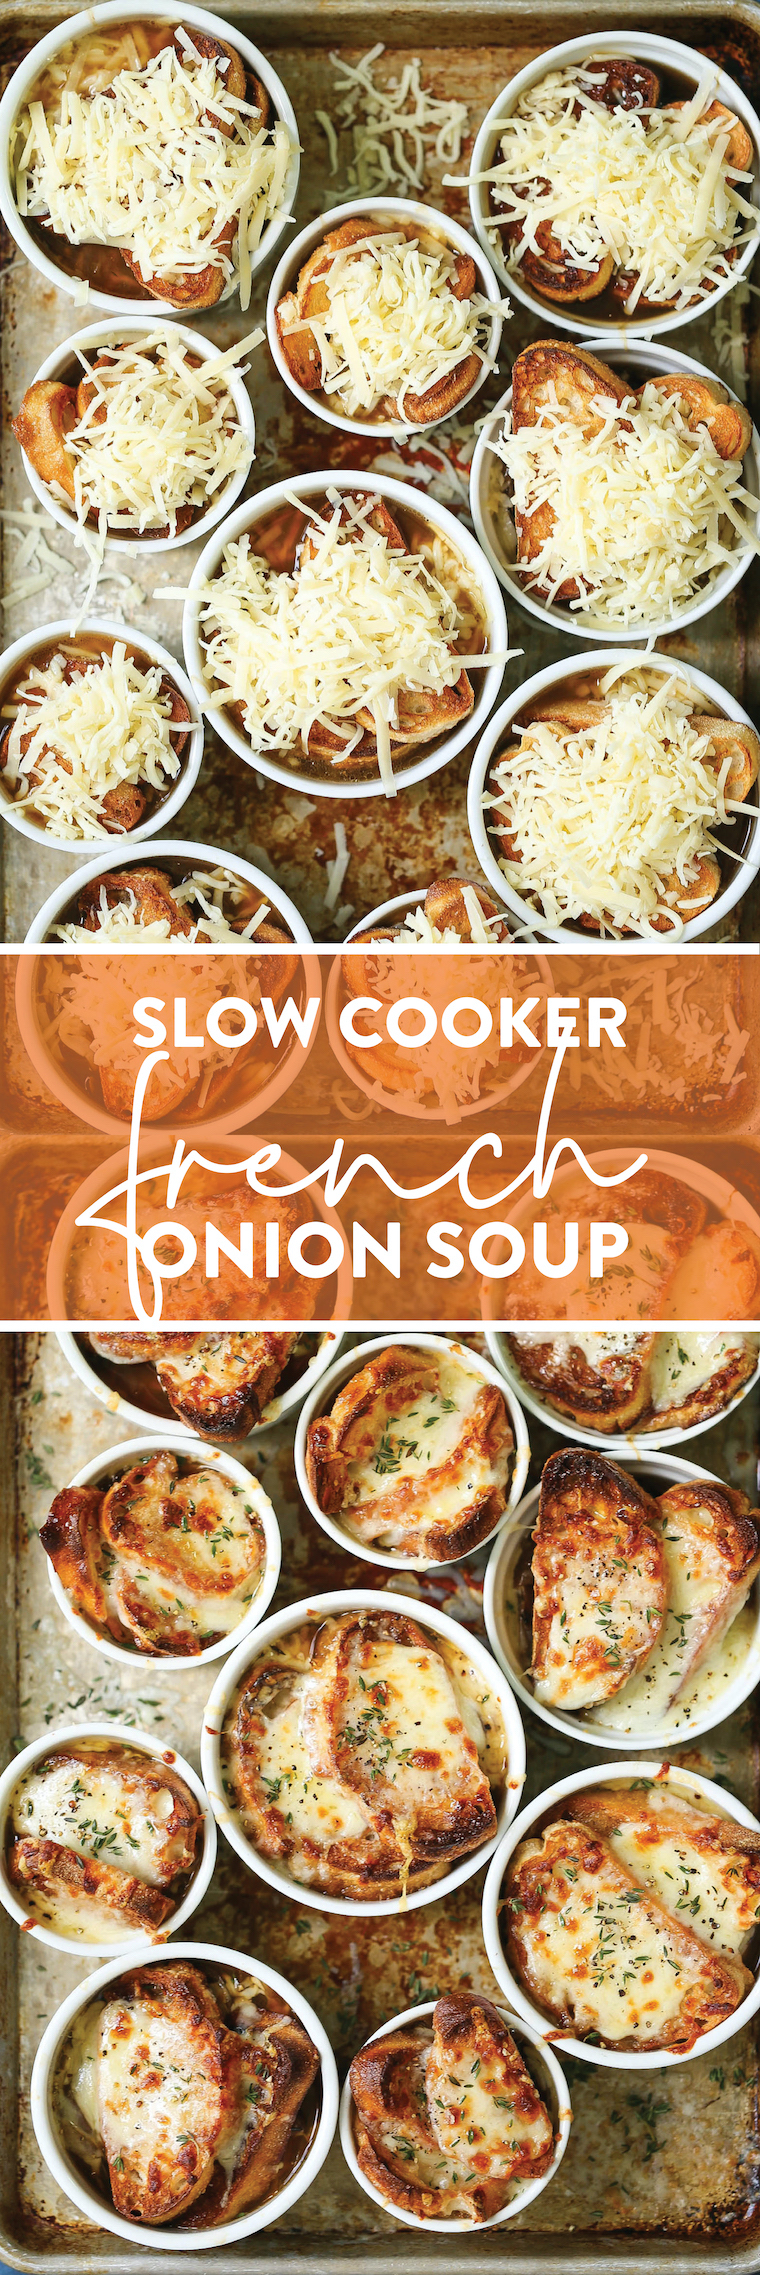 Slow Cooker French Onion Soup - Yes, you can make French onion soup in the crockpot! Ridiculously easy with basically no stirring and no work!